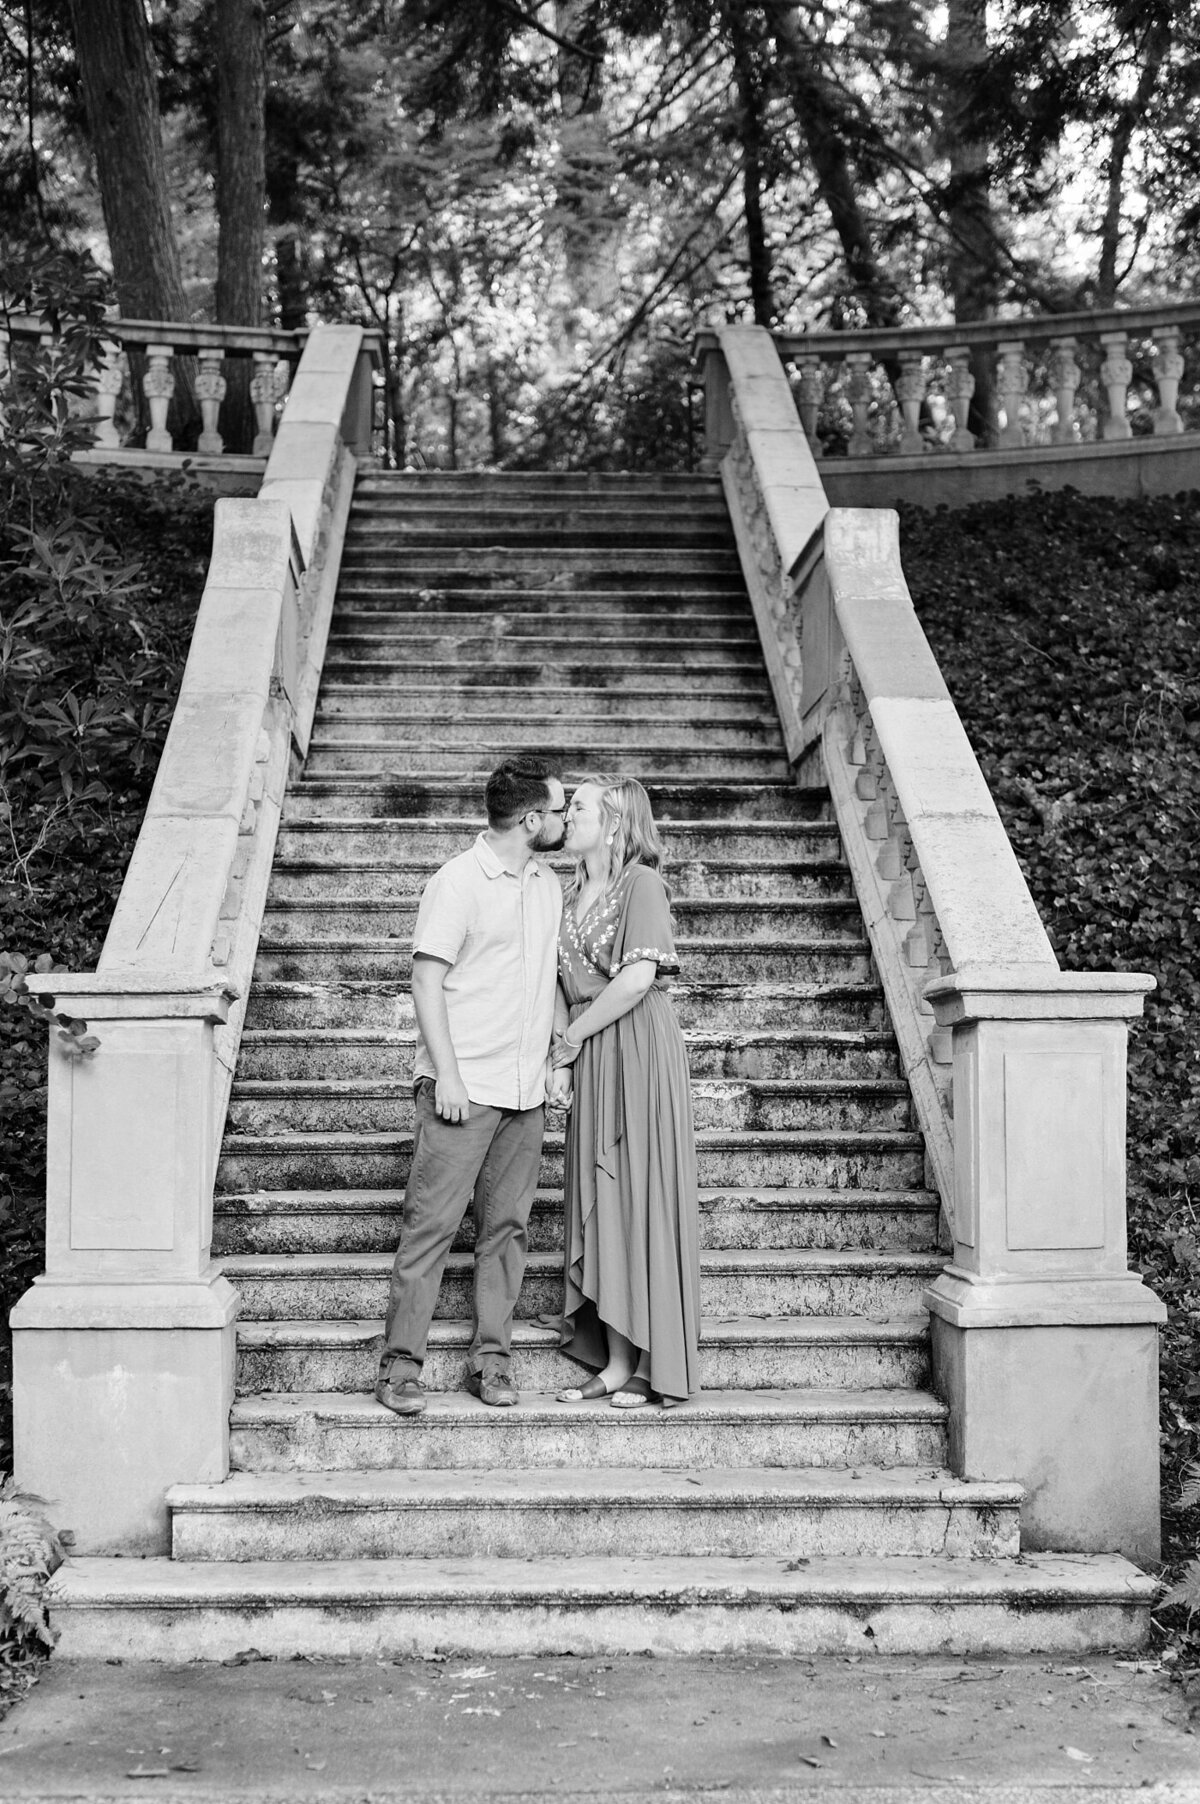 cator-woolford-gardens-engagement-wedding-photographer-laura-barnes-photo-shackelford-09